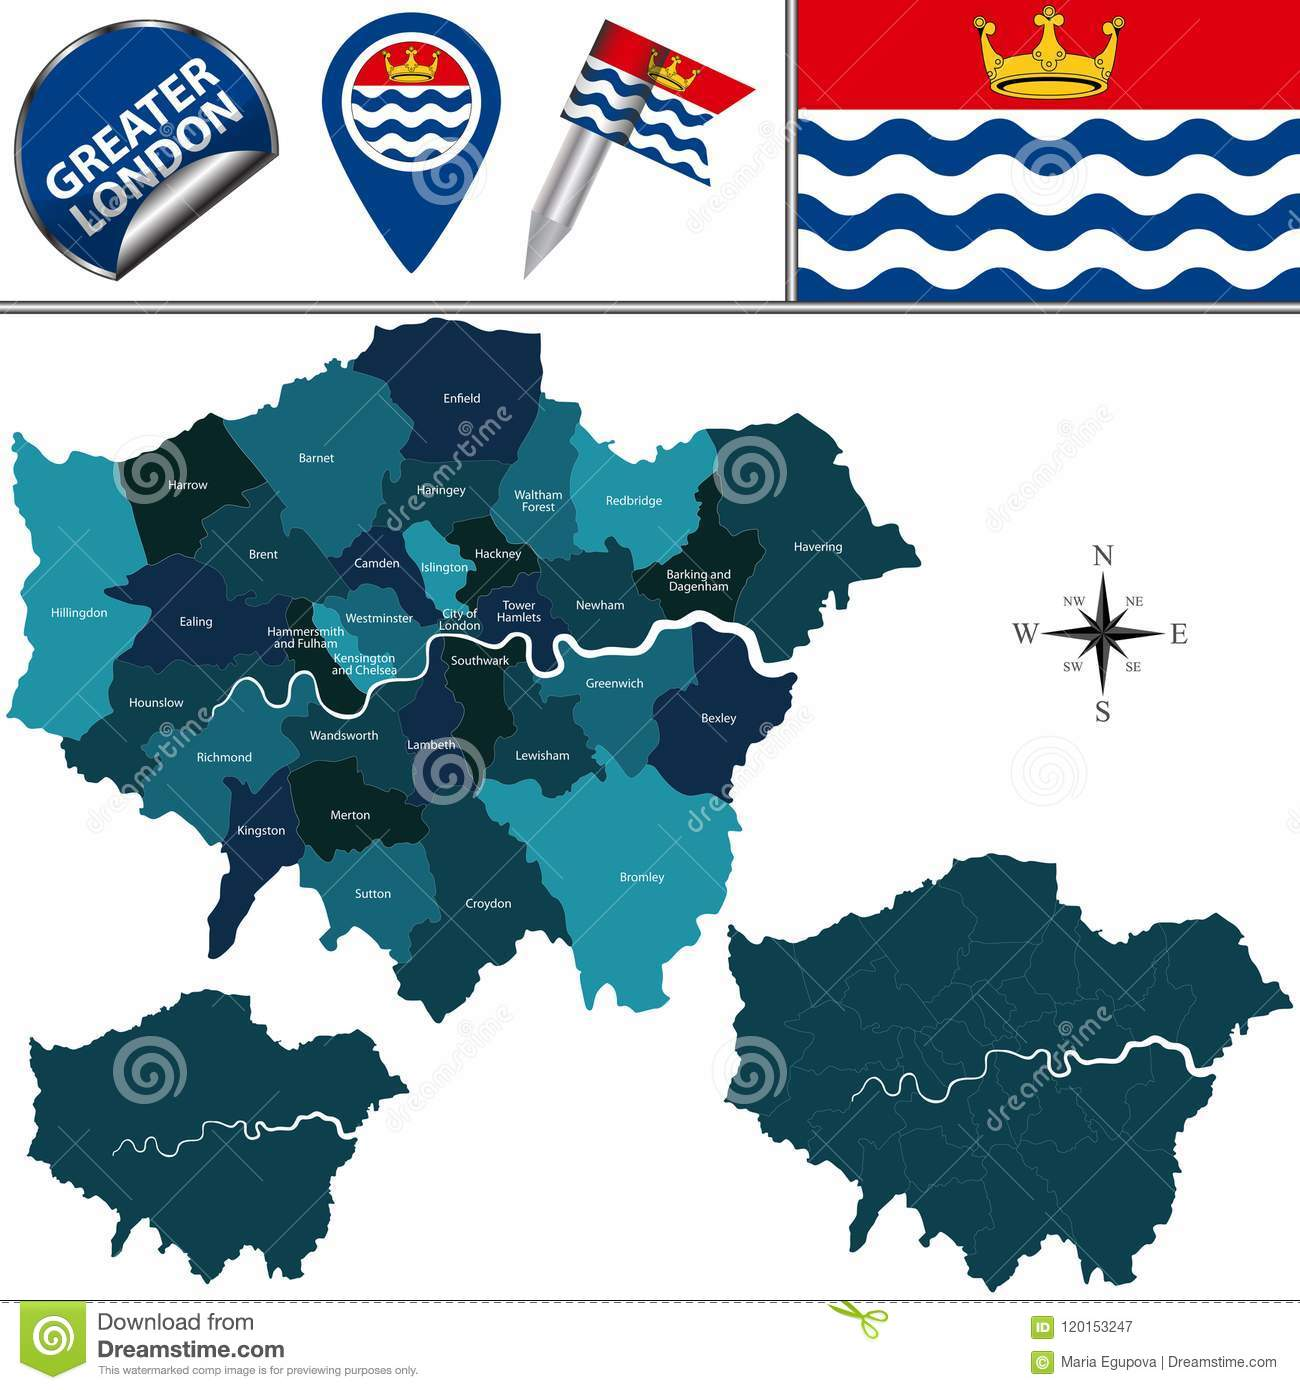 Map Of Greater London Area Uk.Map Of Greater London Uk Stock Vector Illustration Of English